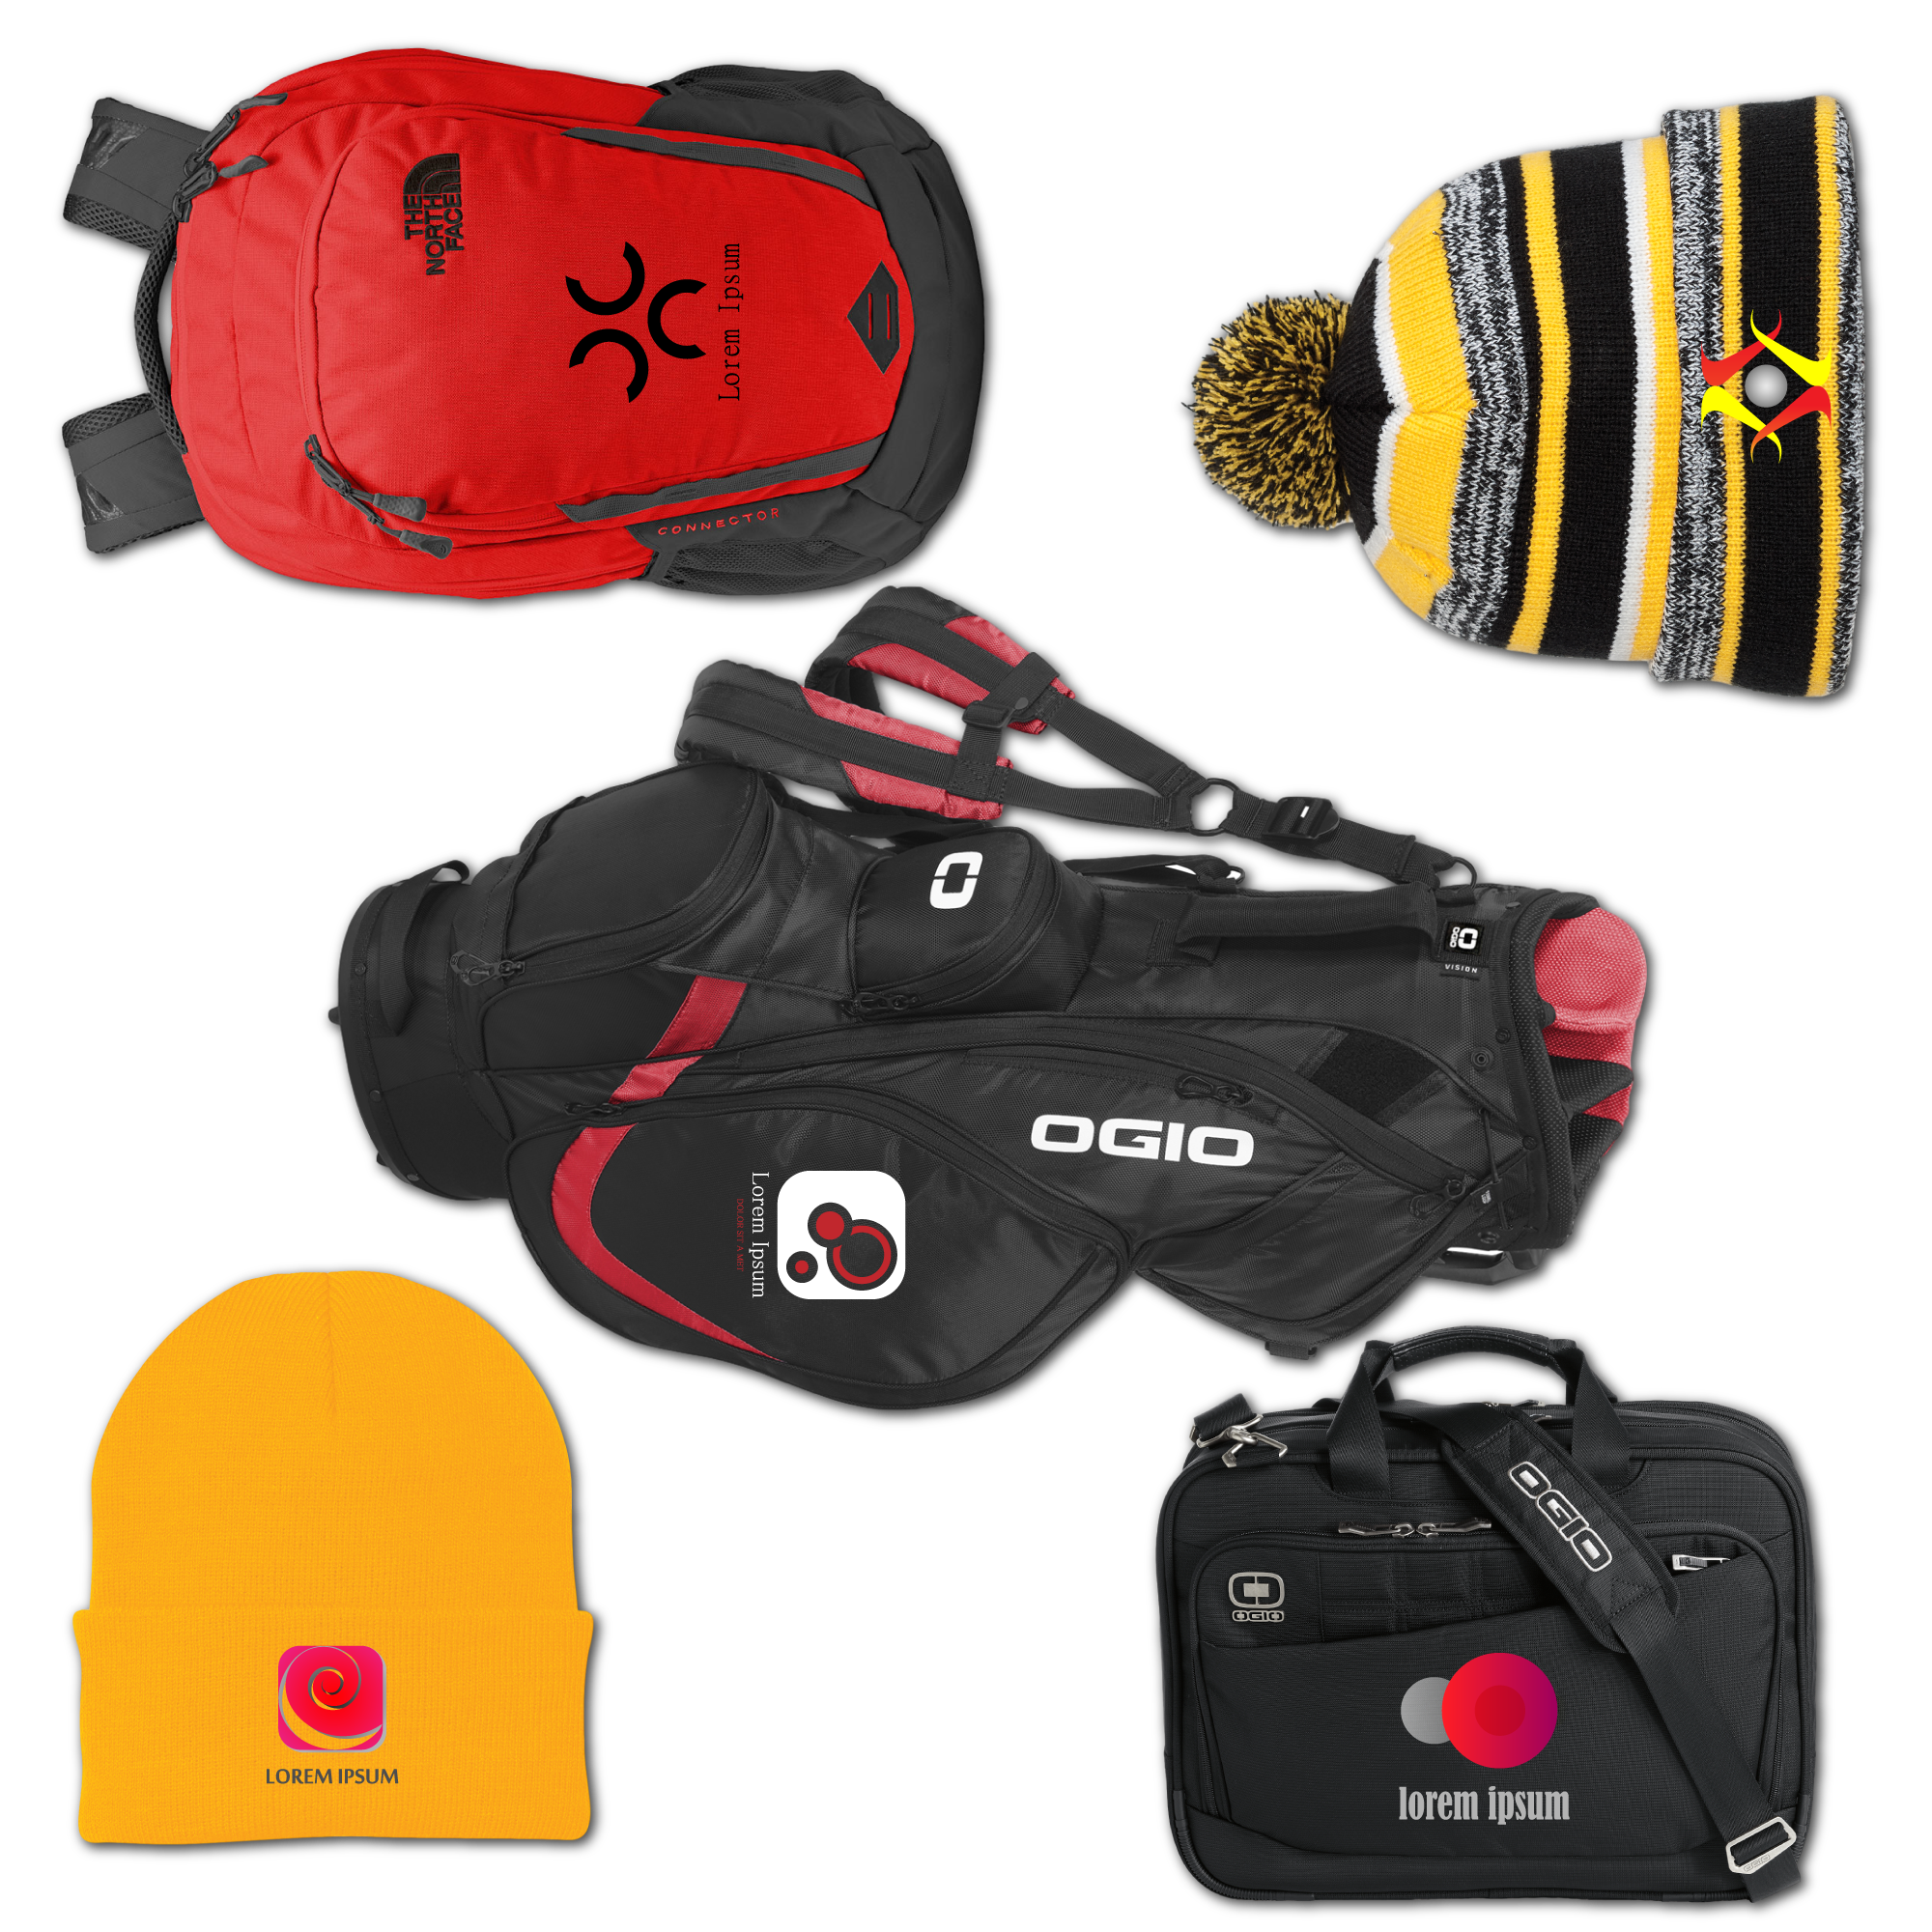 Bags and headware